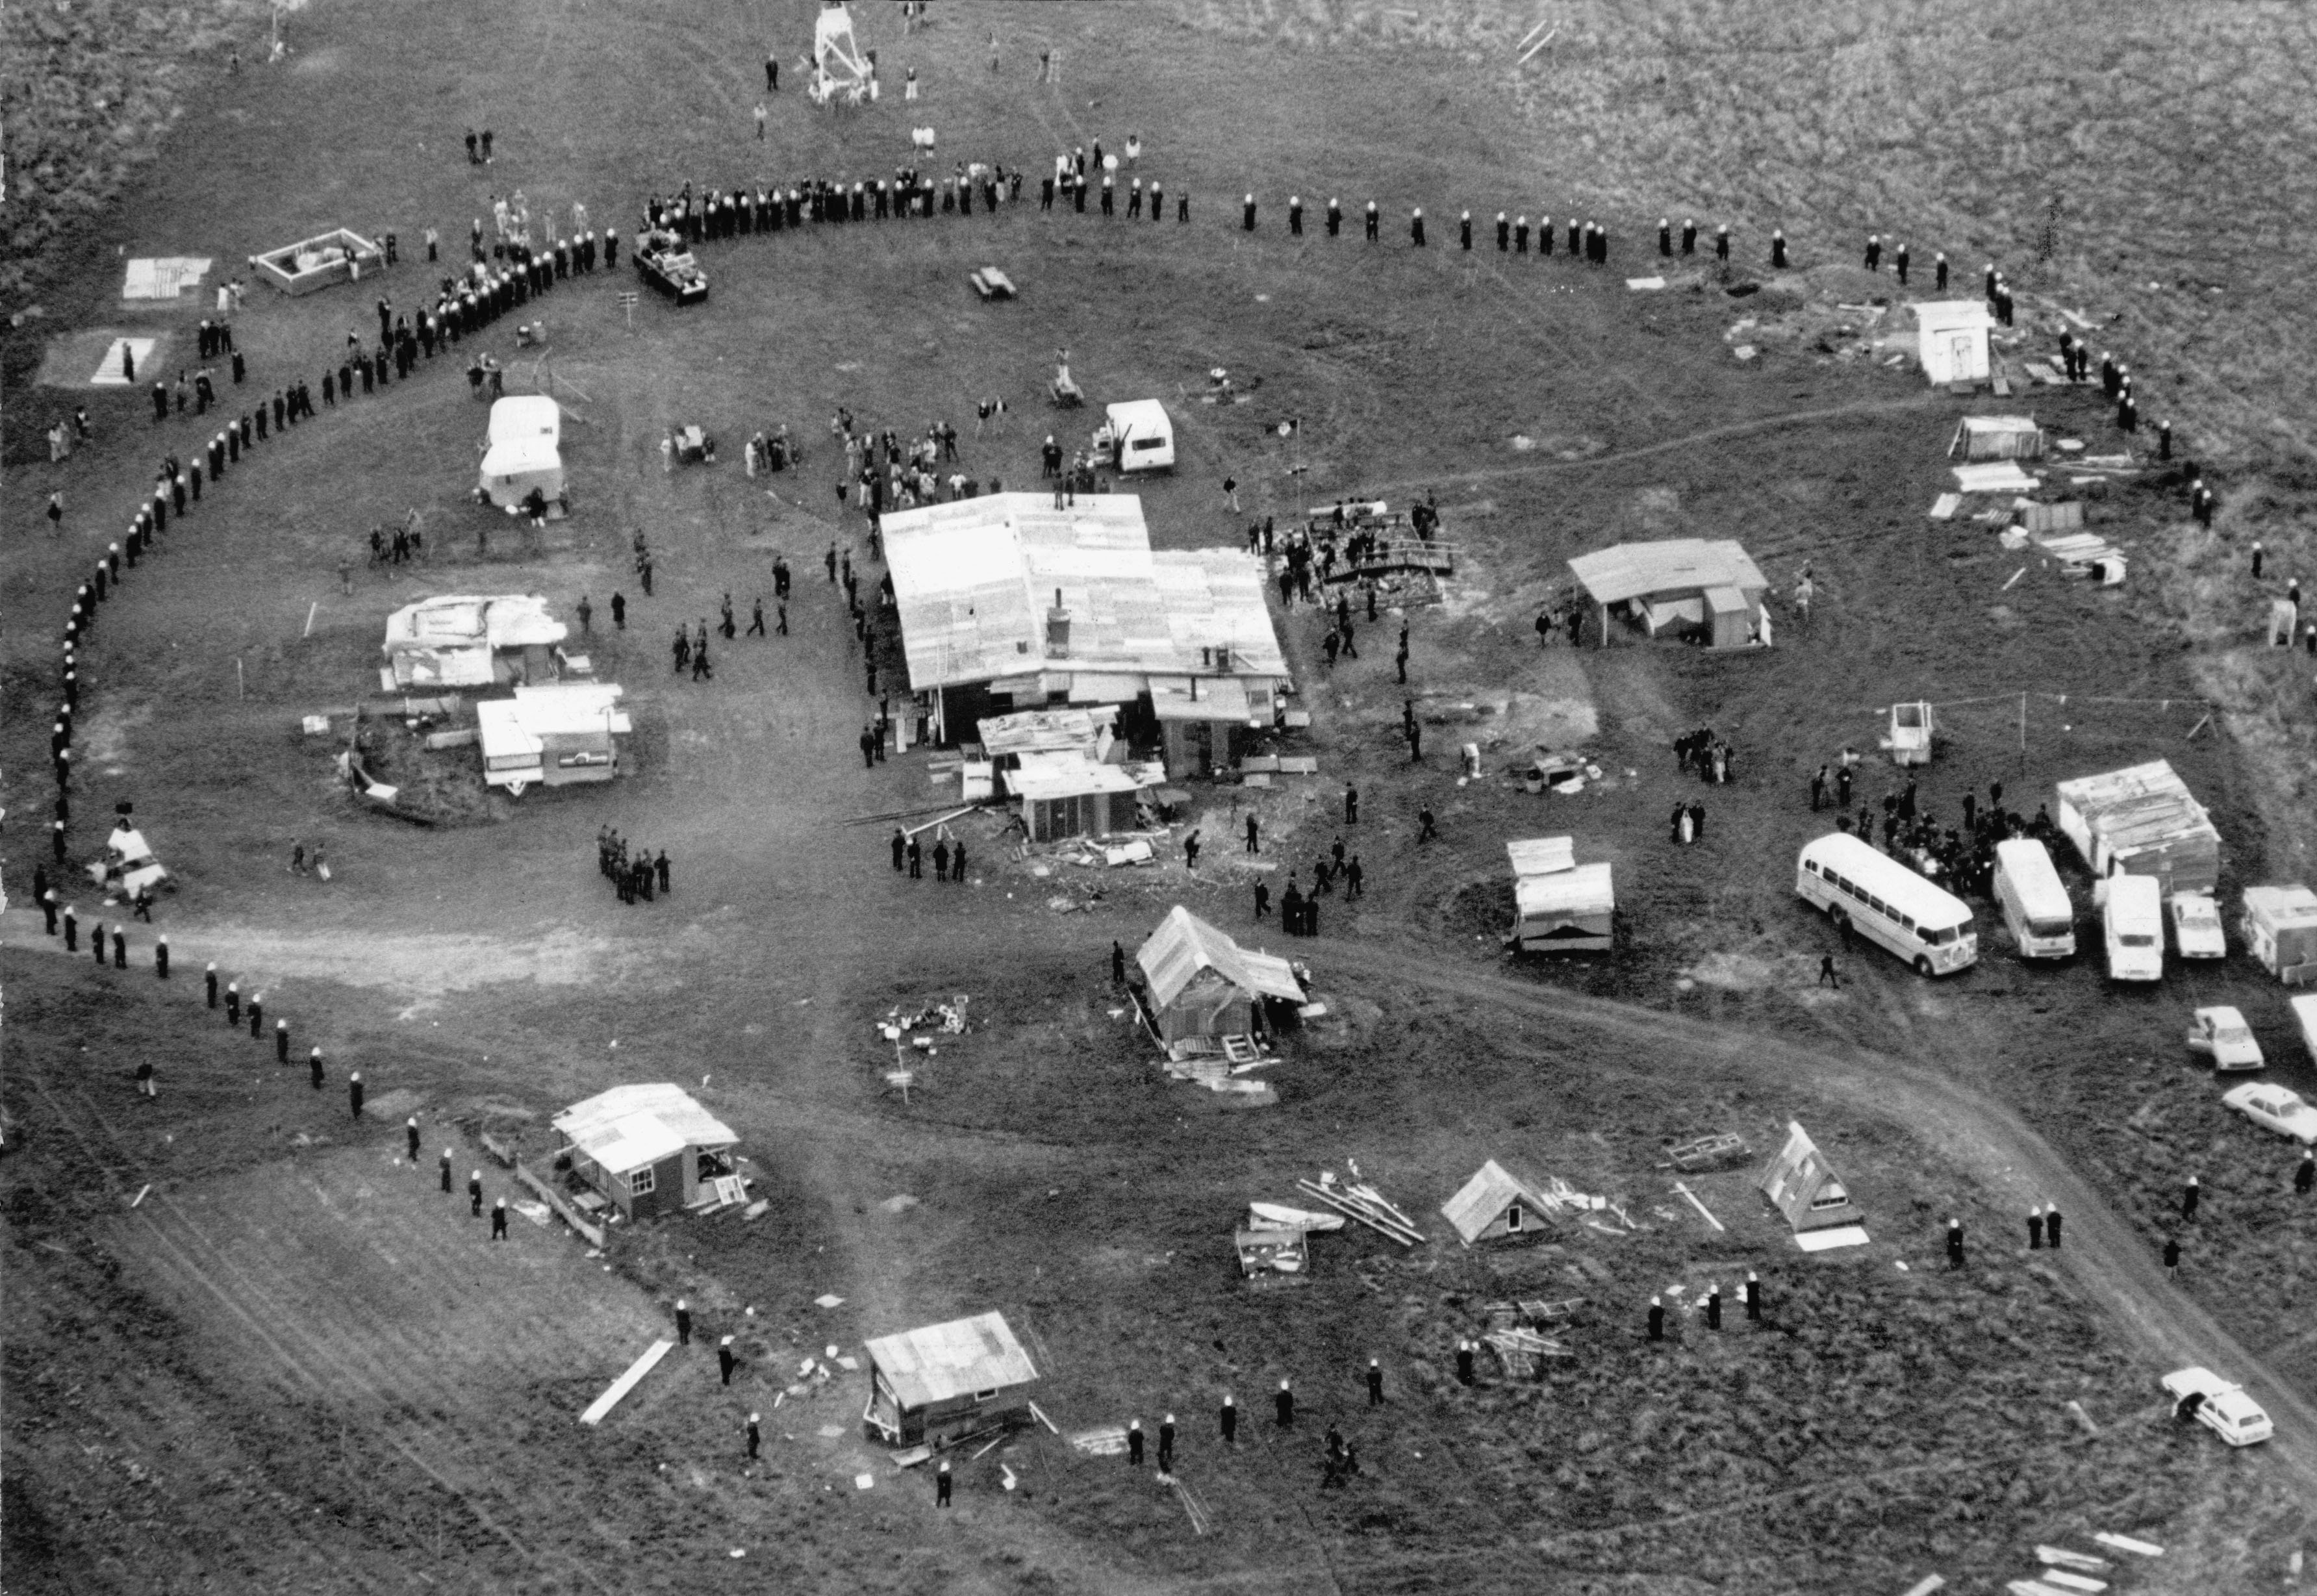 Police surround the protest occupation at Takaparawha (Bastion Point), Auckland, in 1978....